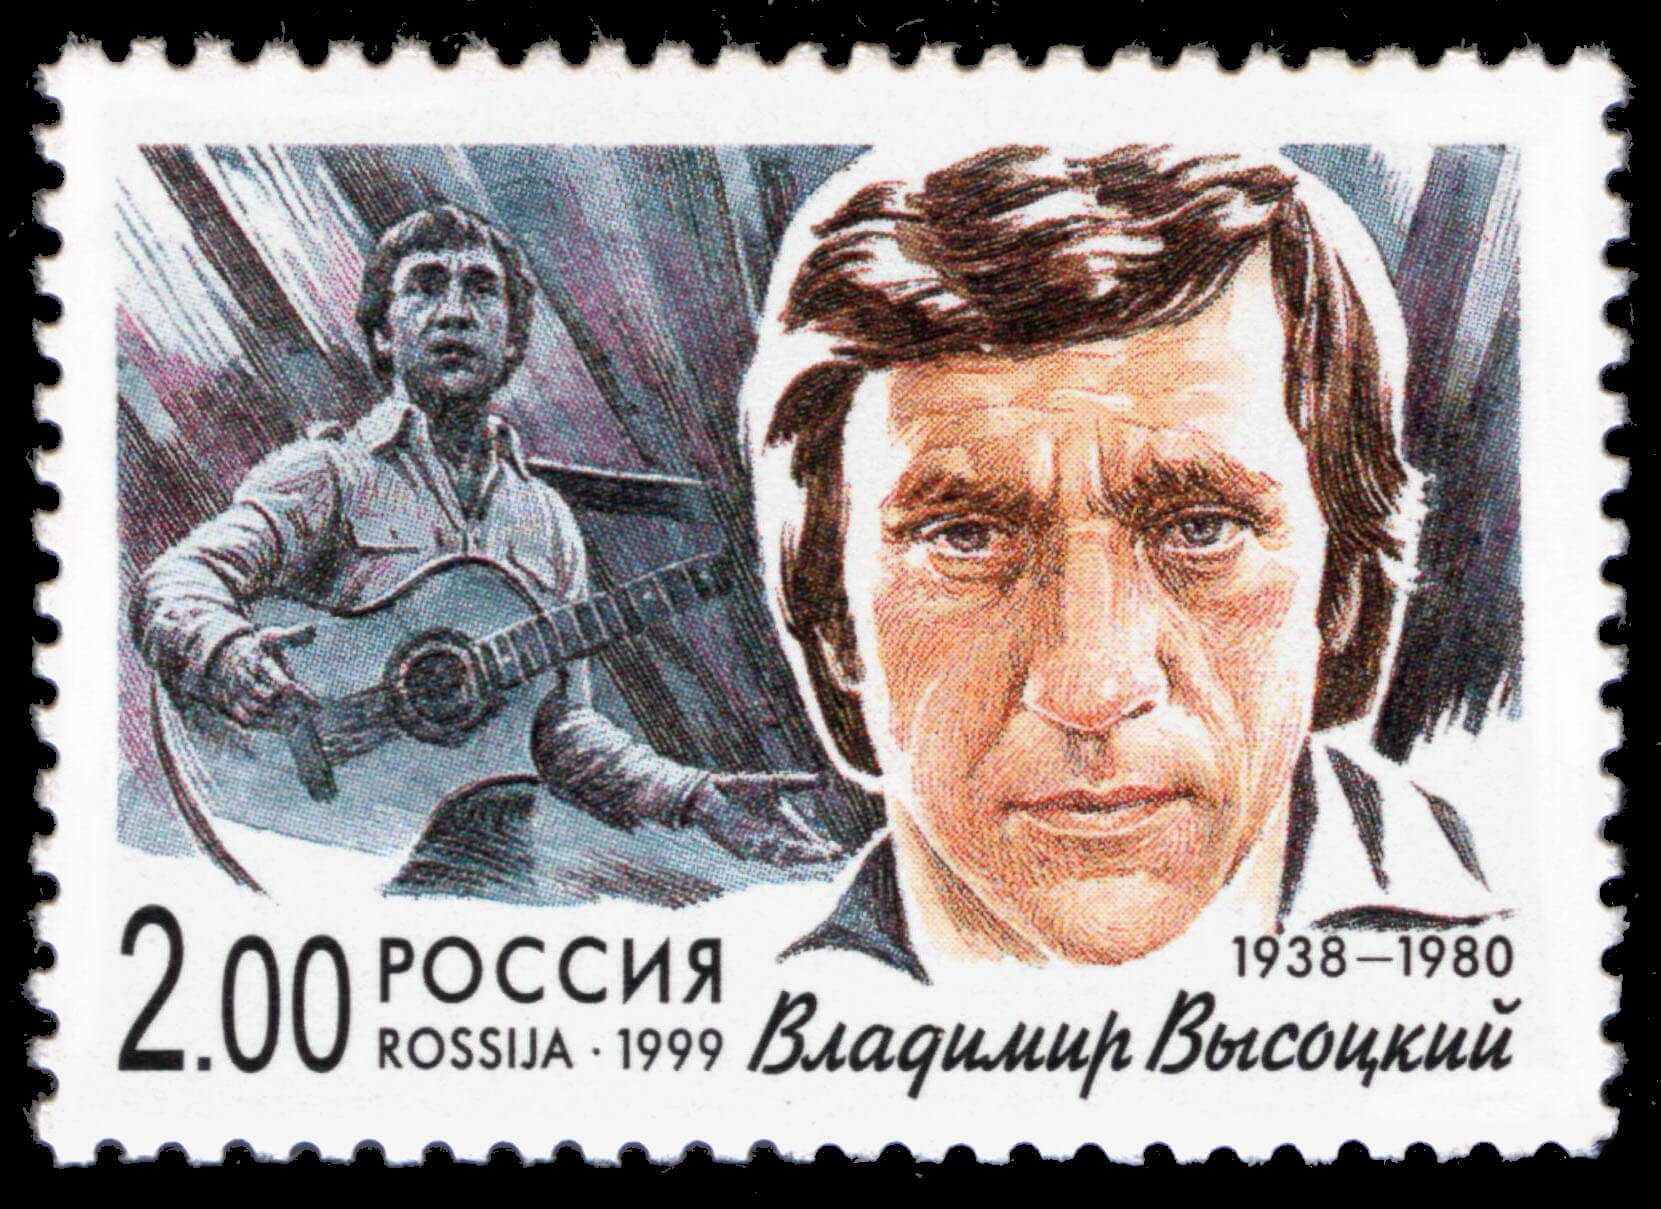 Vladimir Vysotsky - Russian culture